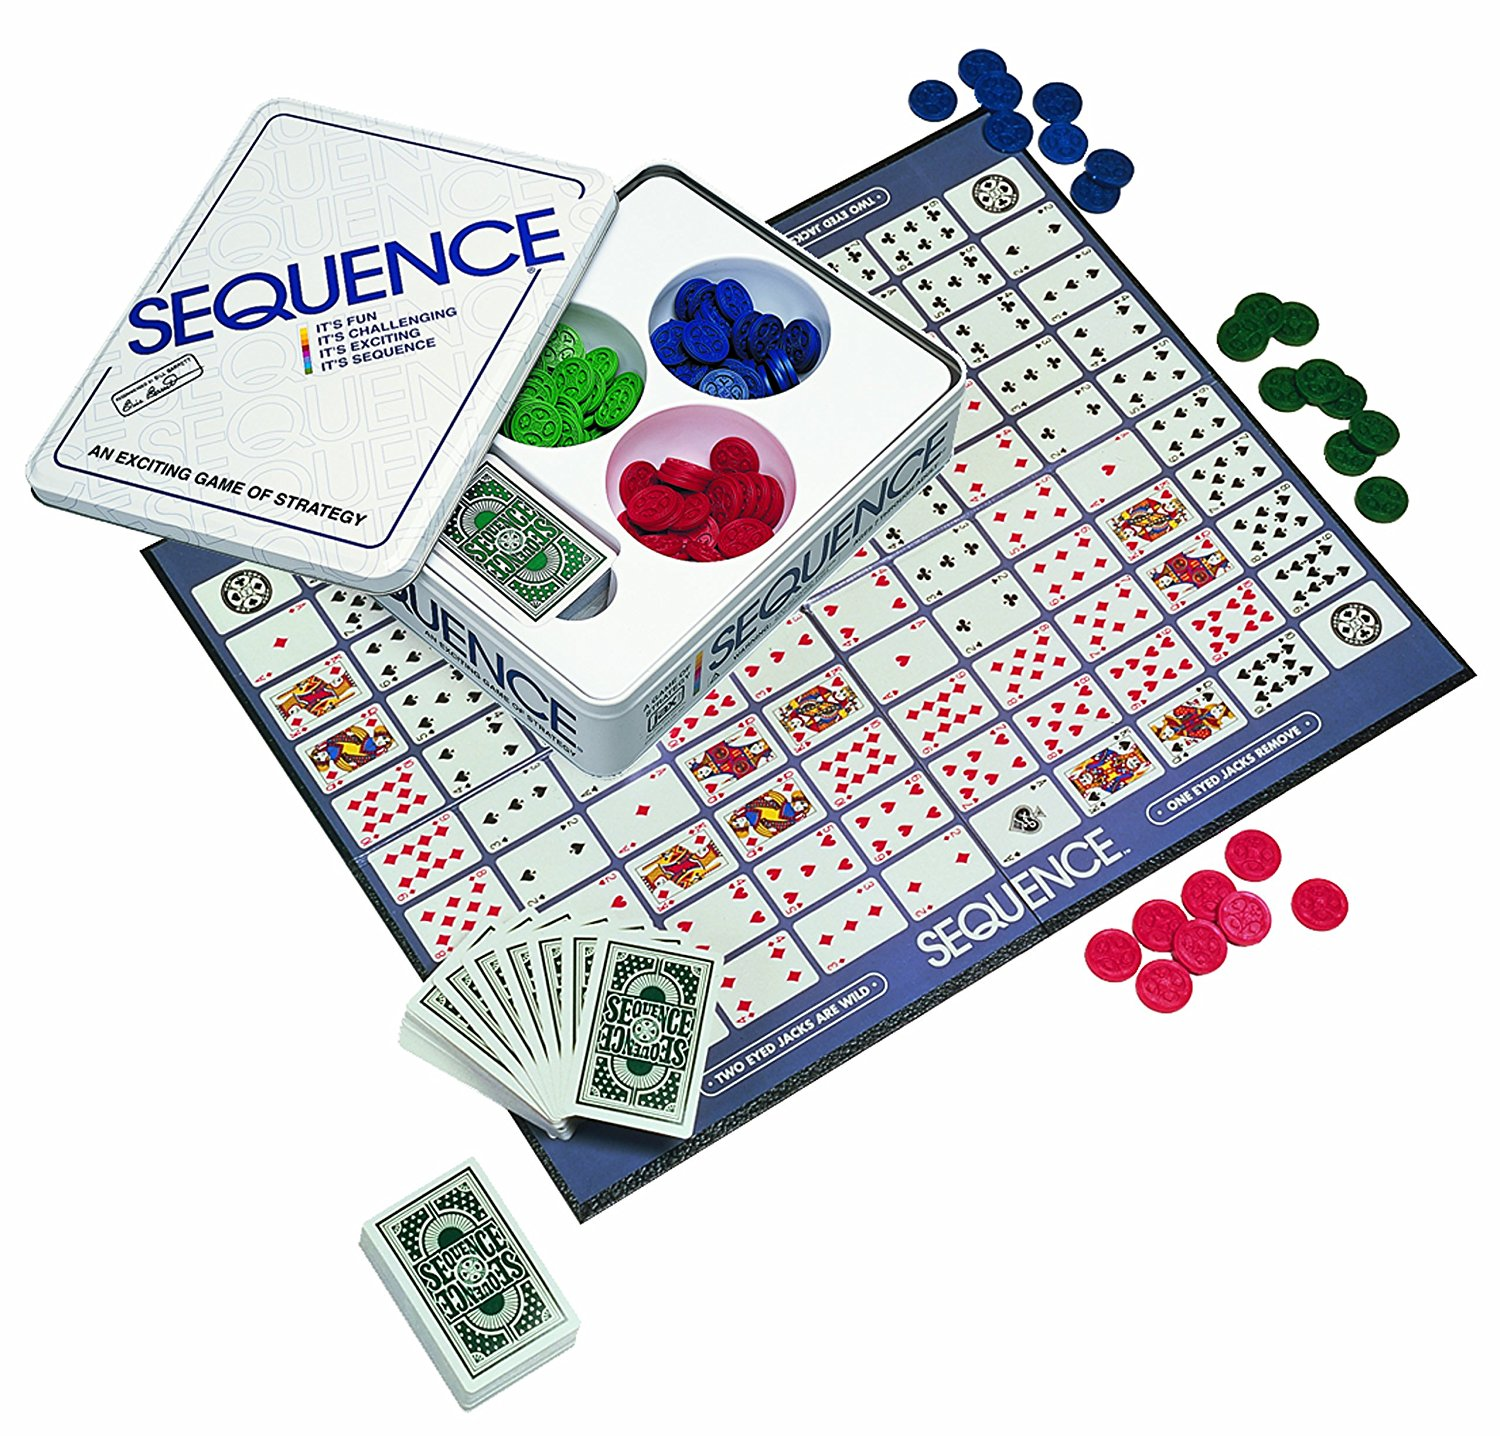 sequence 3 a: order of succession b: an arrangement of the tenses of successive verbs in a sentence designed to express a coherent relationship especially between main and subordinate parts.